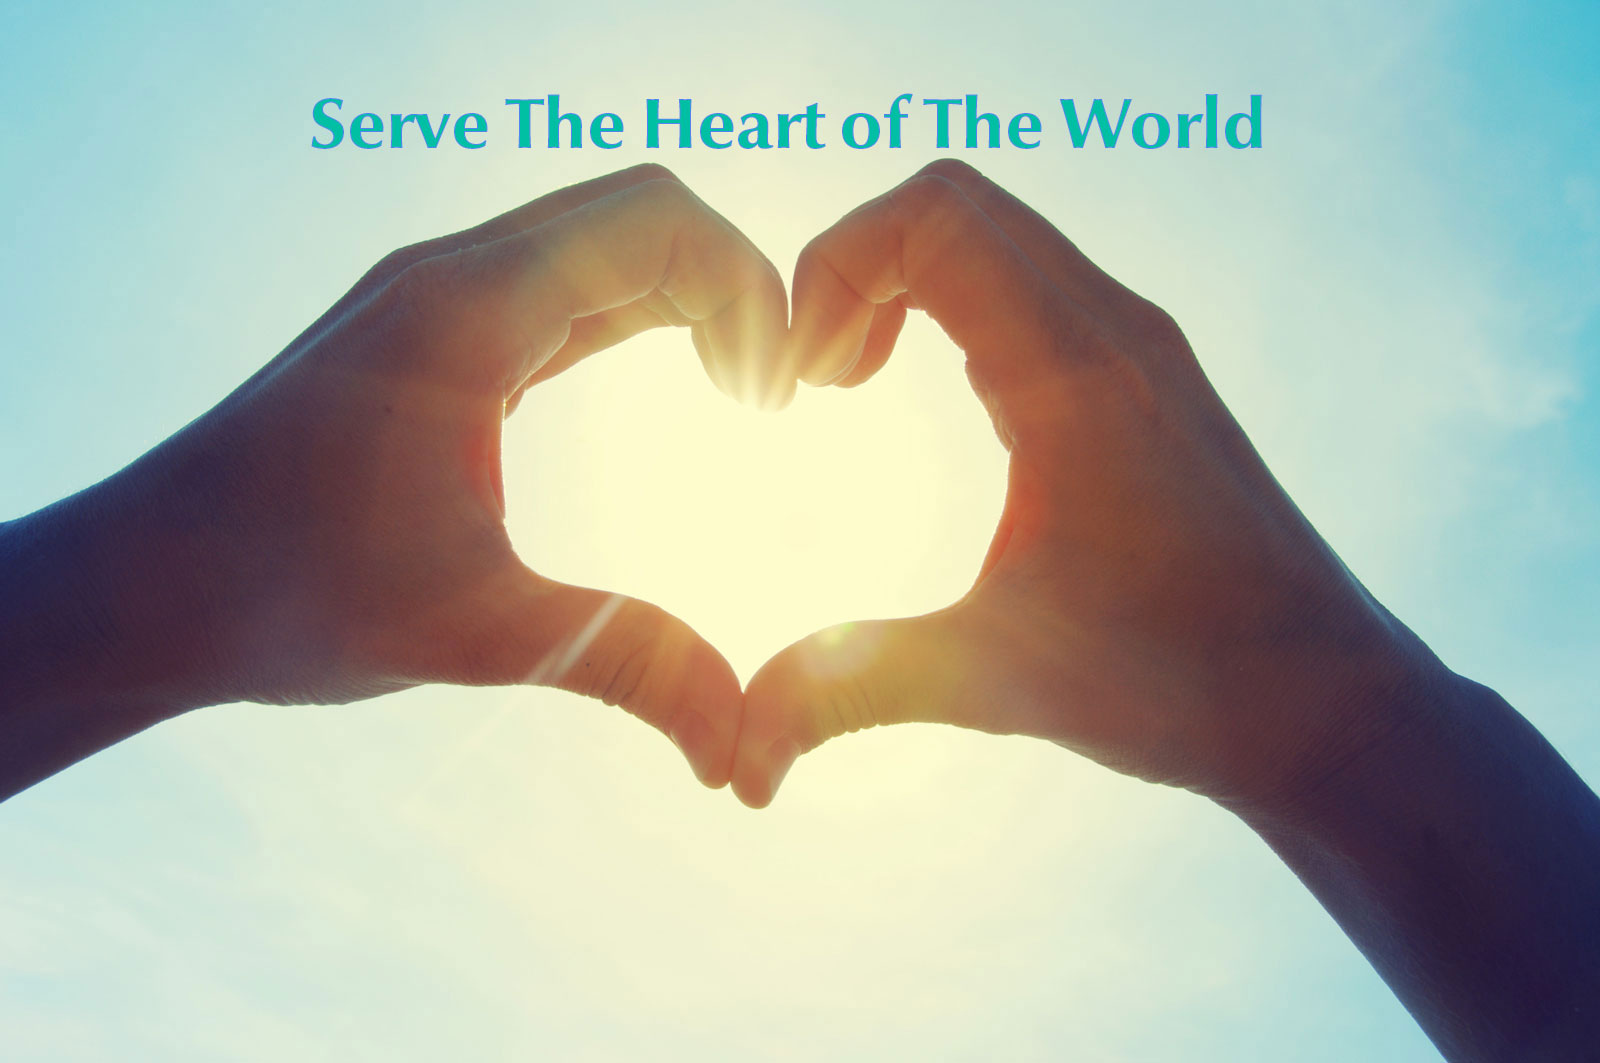 serve-the-heart-of-the-world